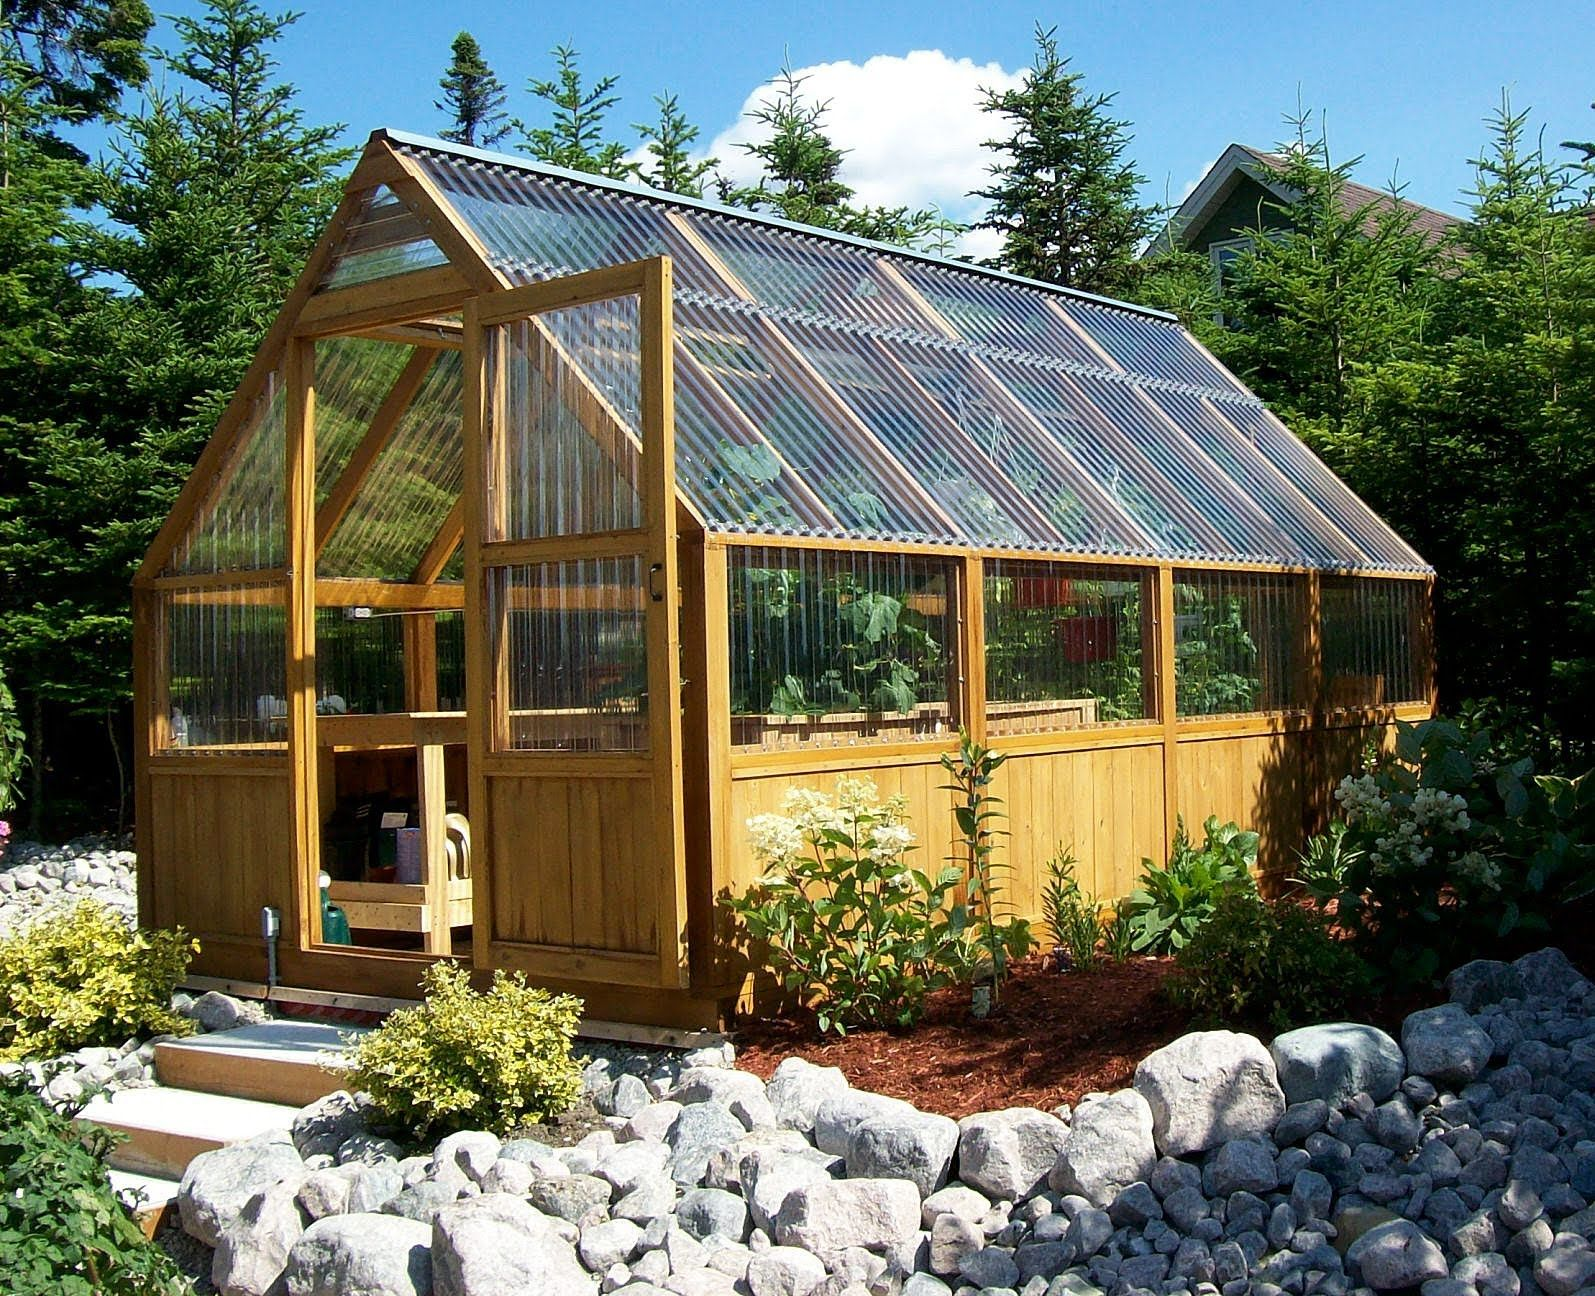 greenhouse plans how to build a diy hobby greenhouse detailed step by